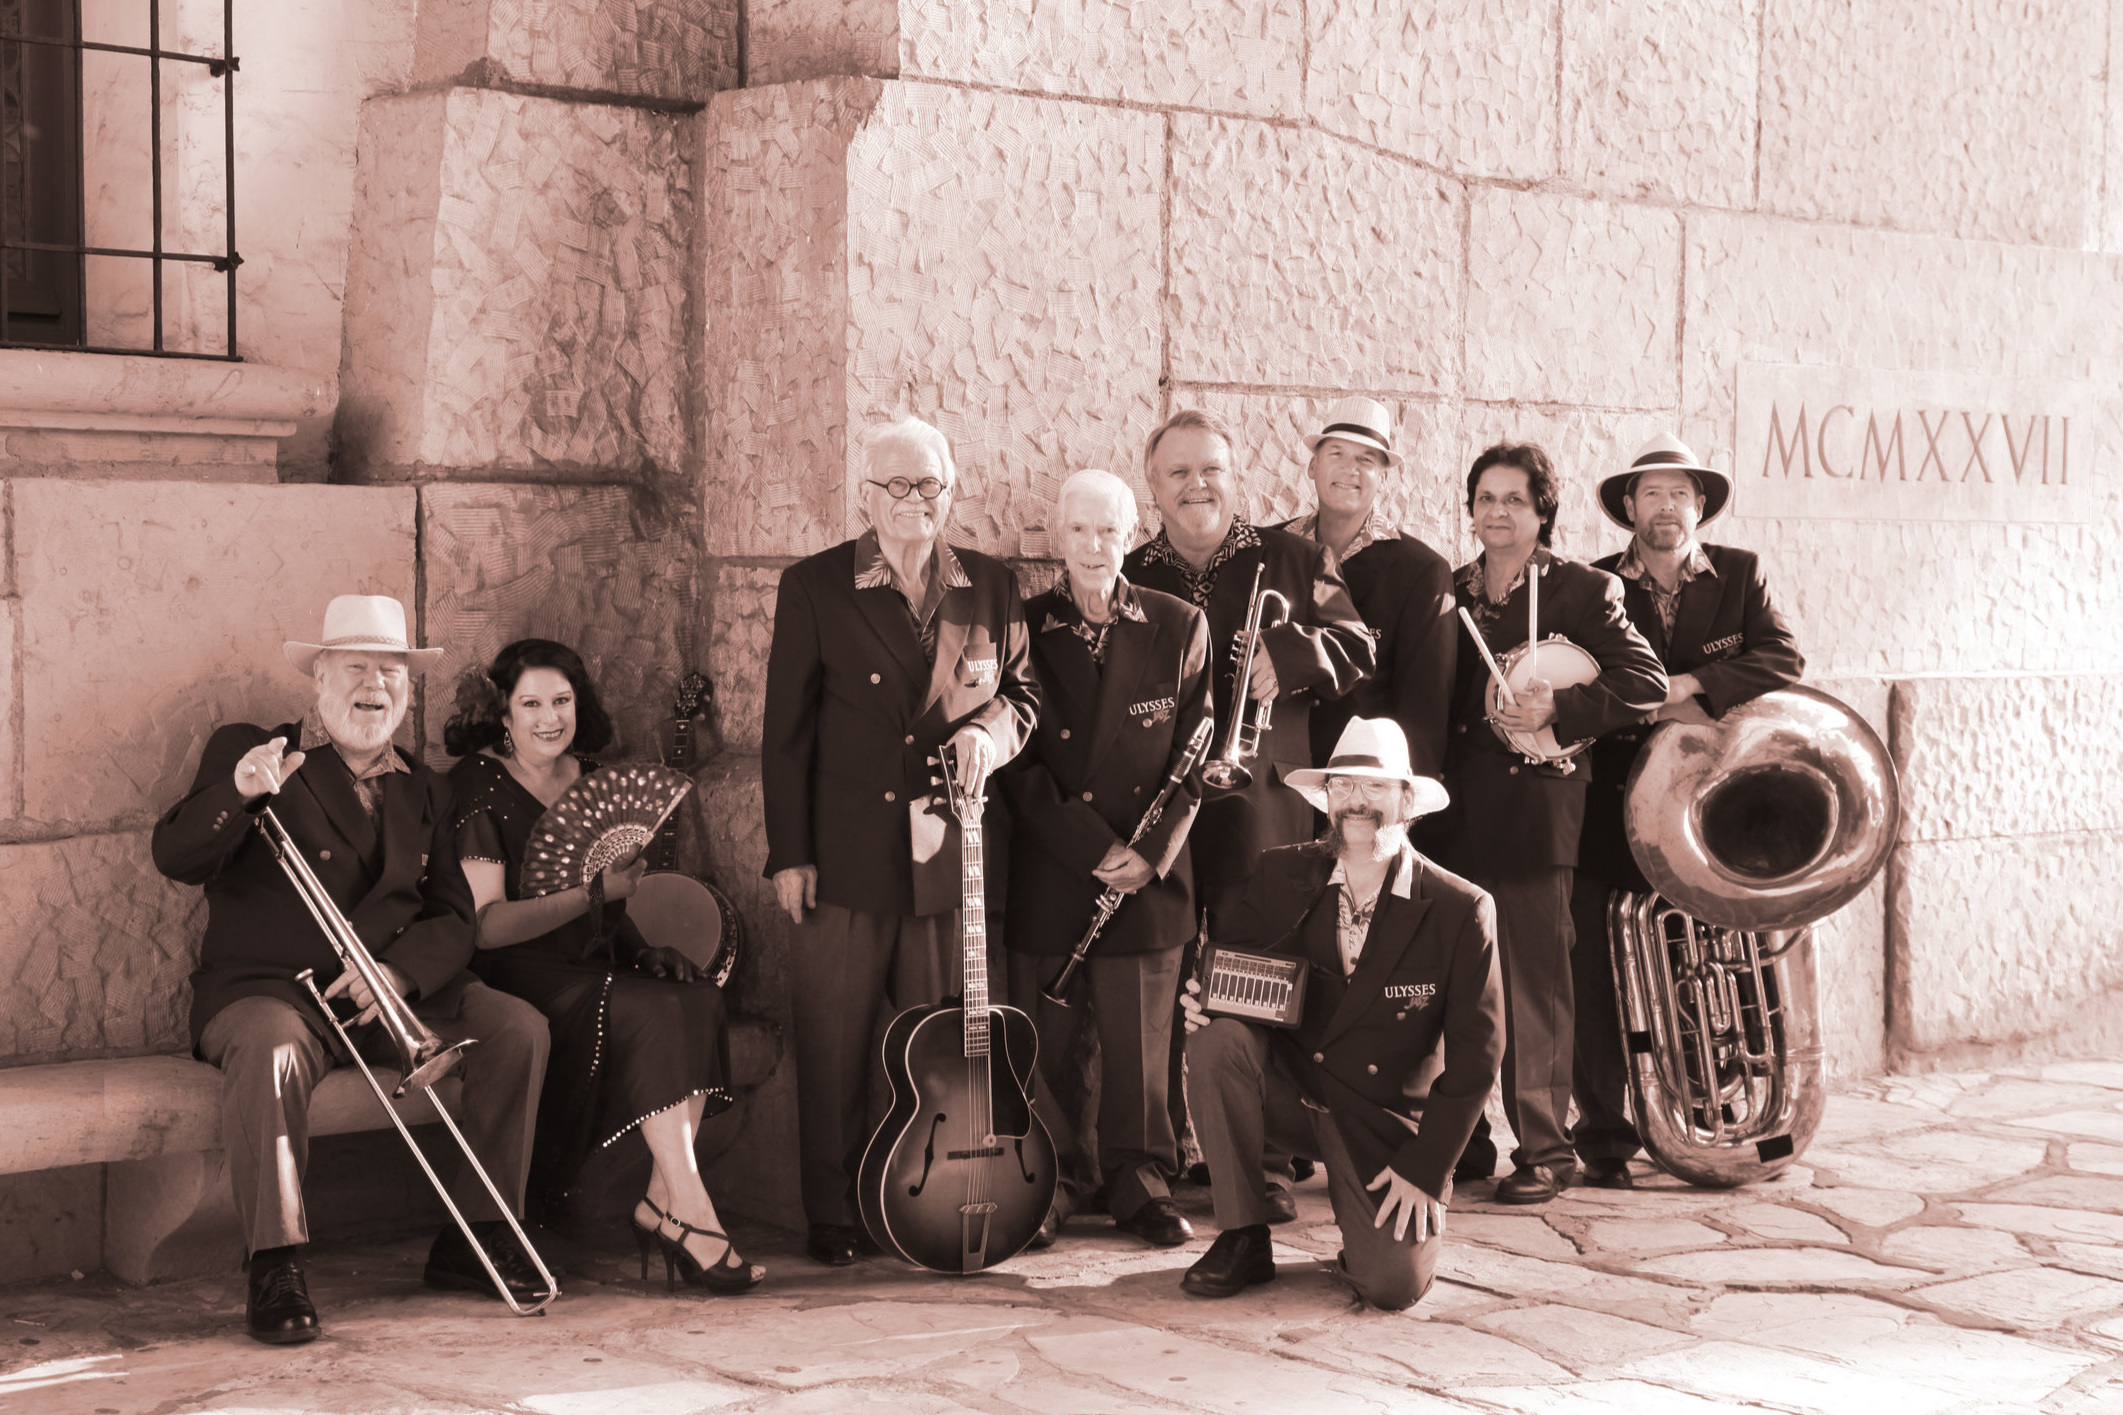 Ulysses Jasz Band - December 29th • Momentum Dance StudioFor over 20 years, Ulysses Jasz has been playing their festive traditional jazz tunes from the 20's and 30's to Santa Barbara residents at The James Joyce. We are excited to welcome them back to Santa Swing this year!